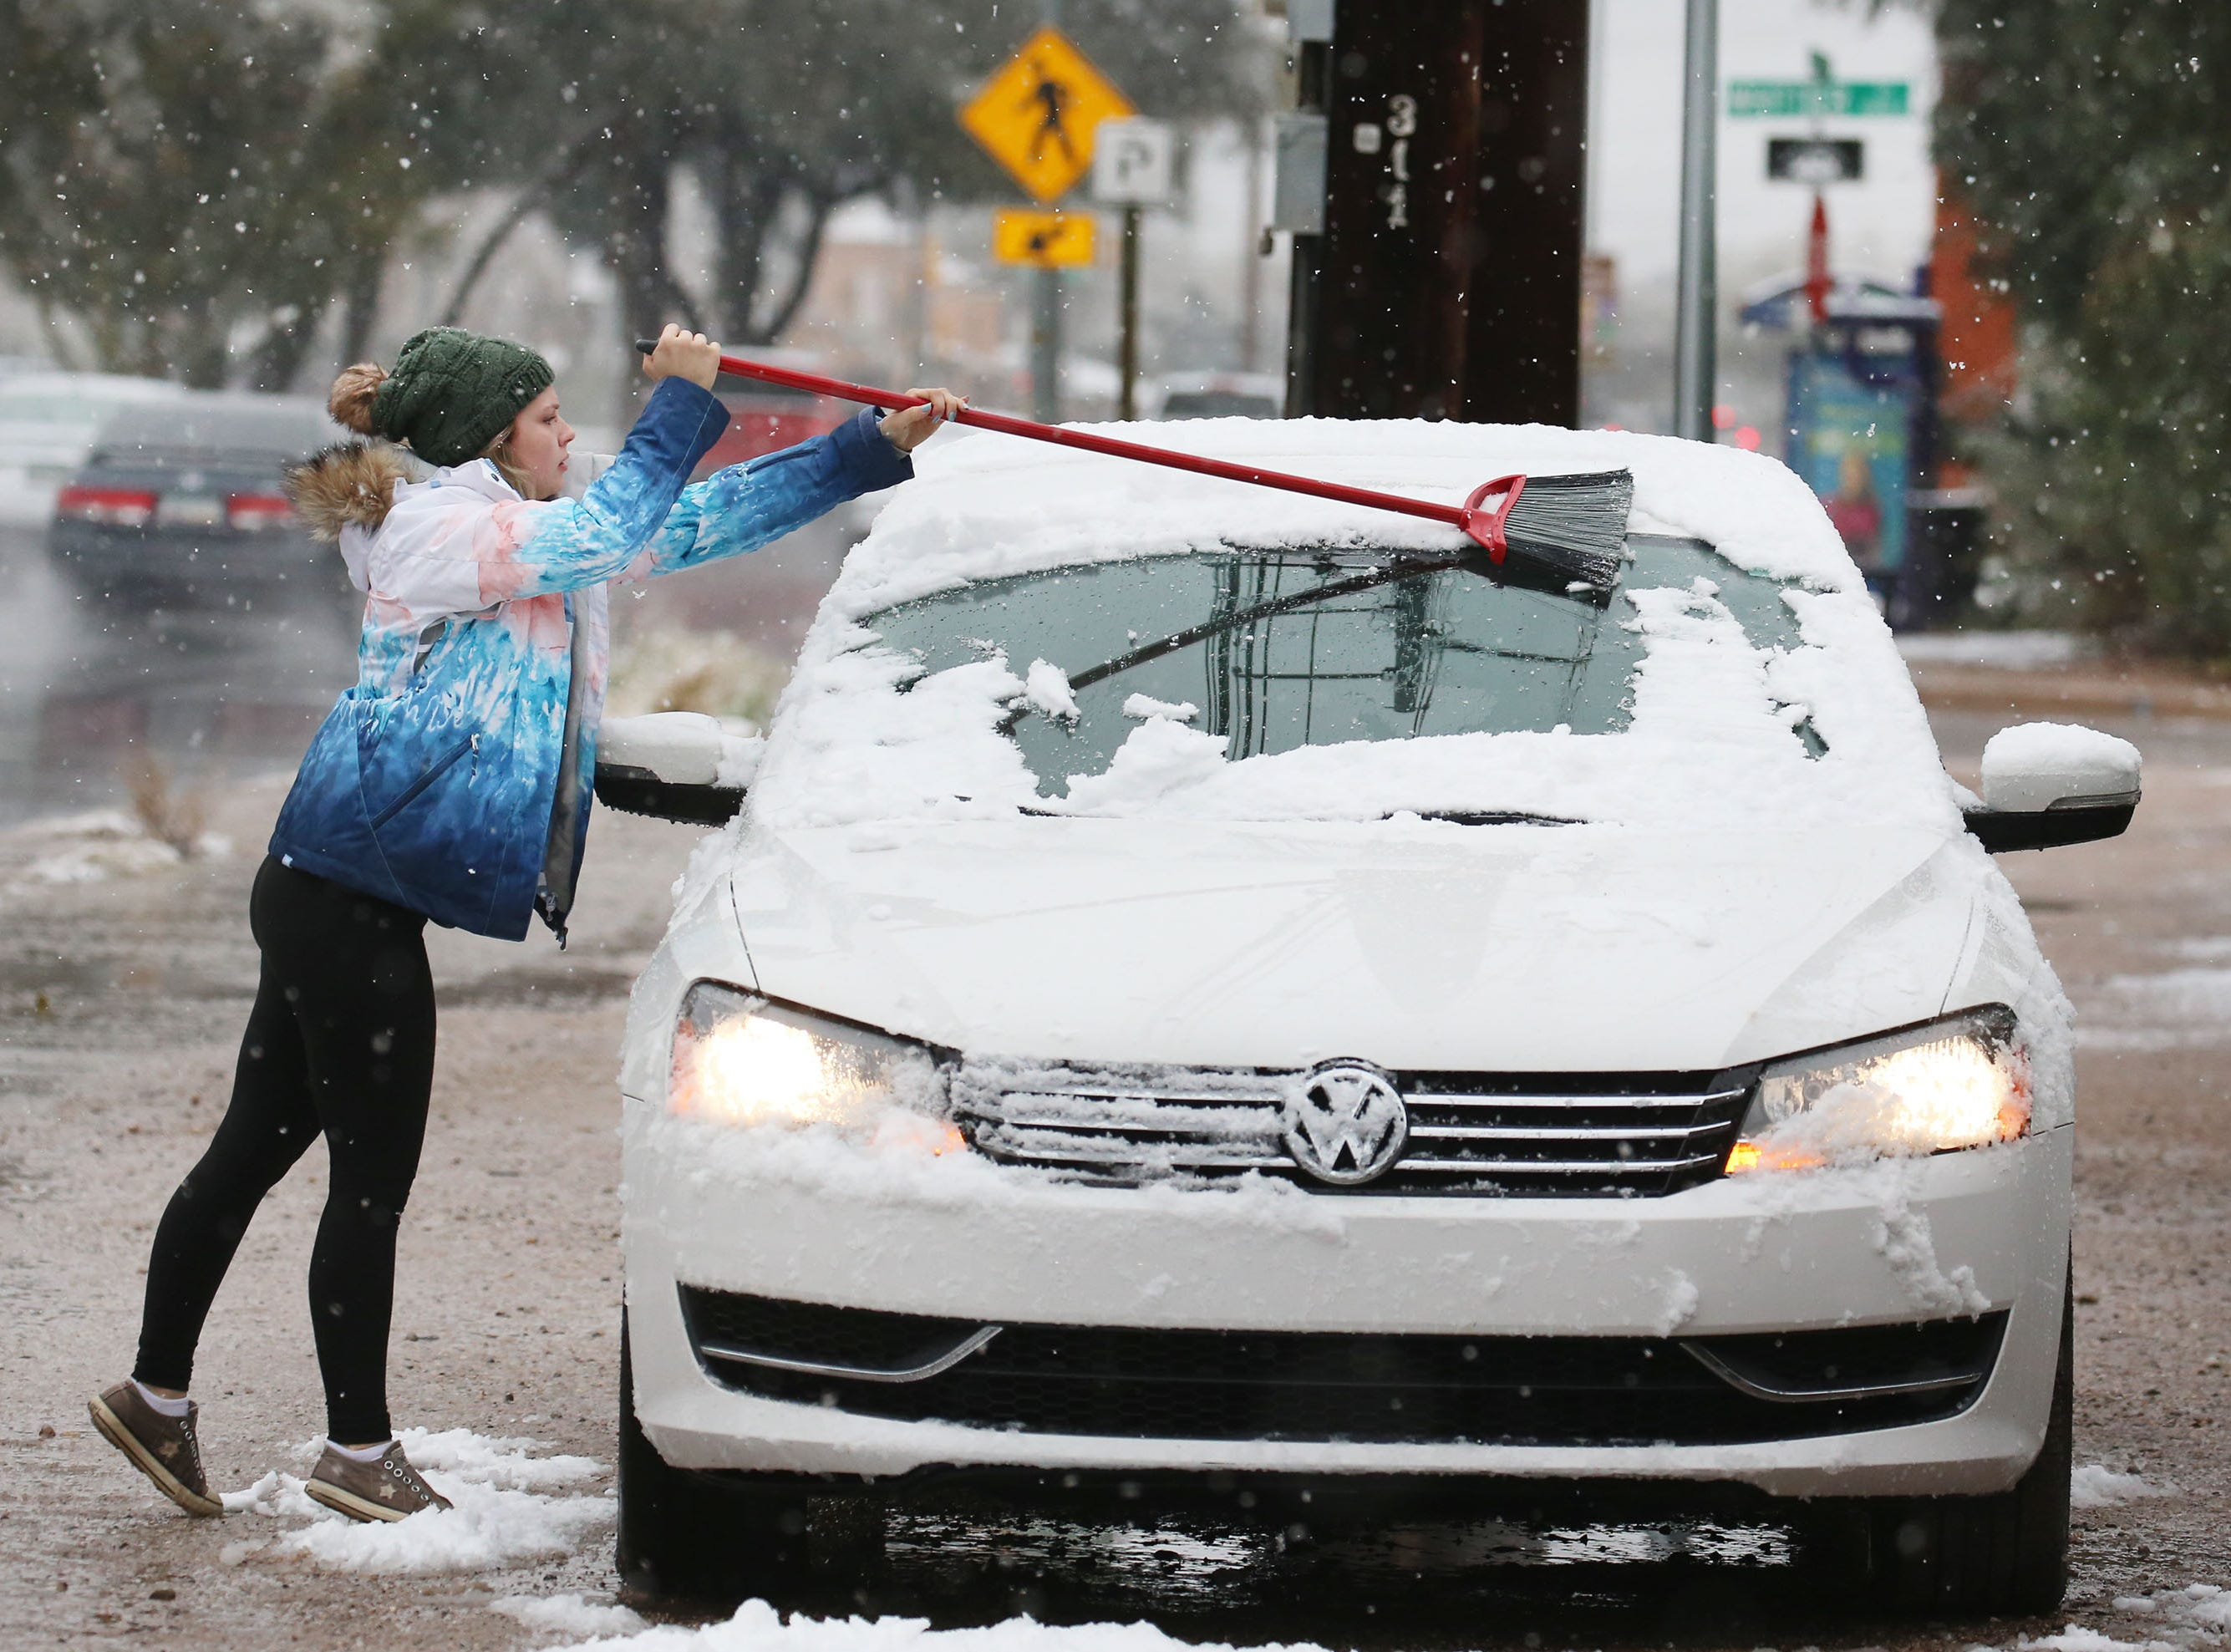 Ambria Dell'Oro, a New Jersey native, uses a broom to wipe the collected snow from her Volkswagen in midtown as the metro Tucson area receives snowfall following a late February storm system, Feb. 22, 2019, in Tucson, Ariz.